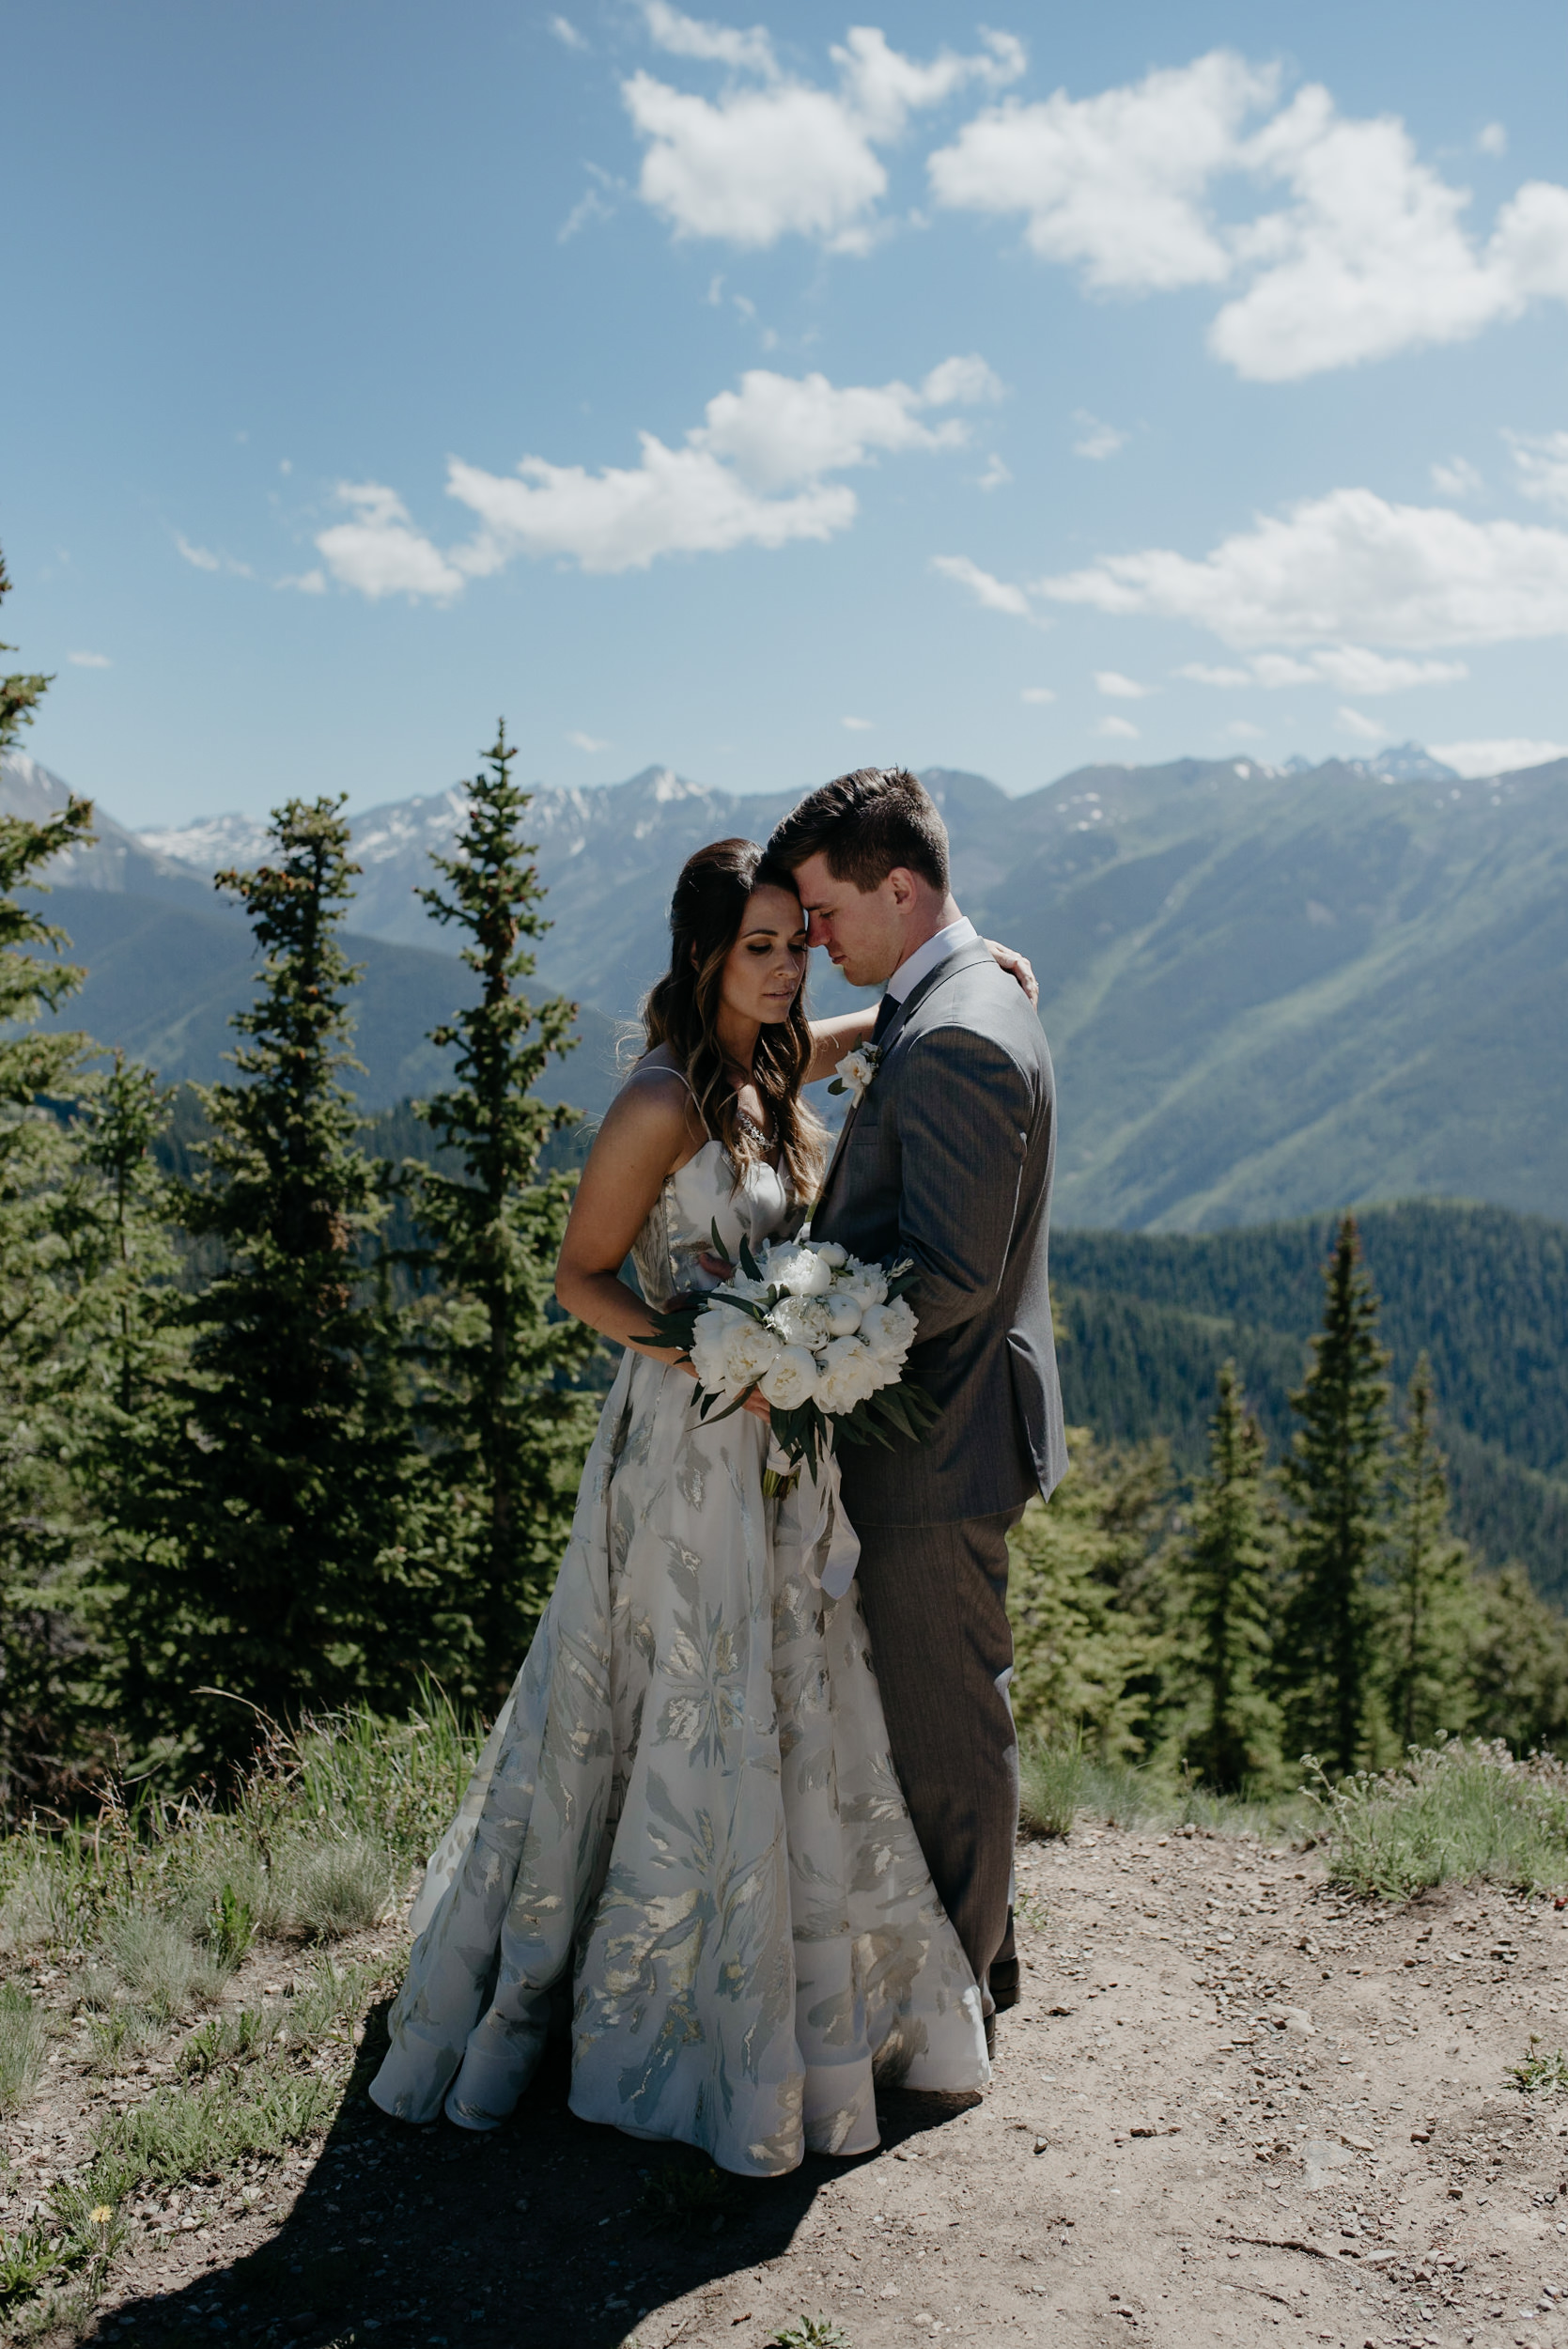 Colorado mountain wedding and elopement photographer. Aspen wedding at The Little Nell.